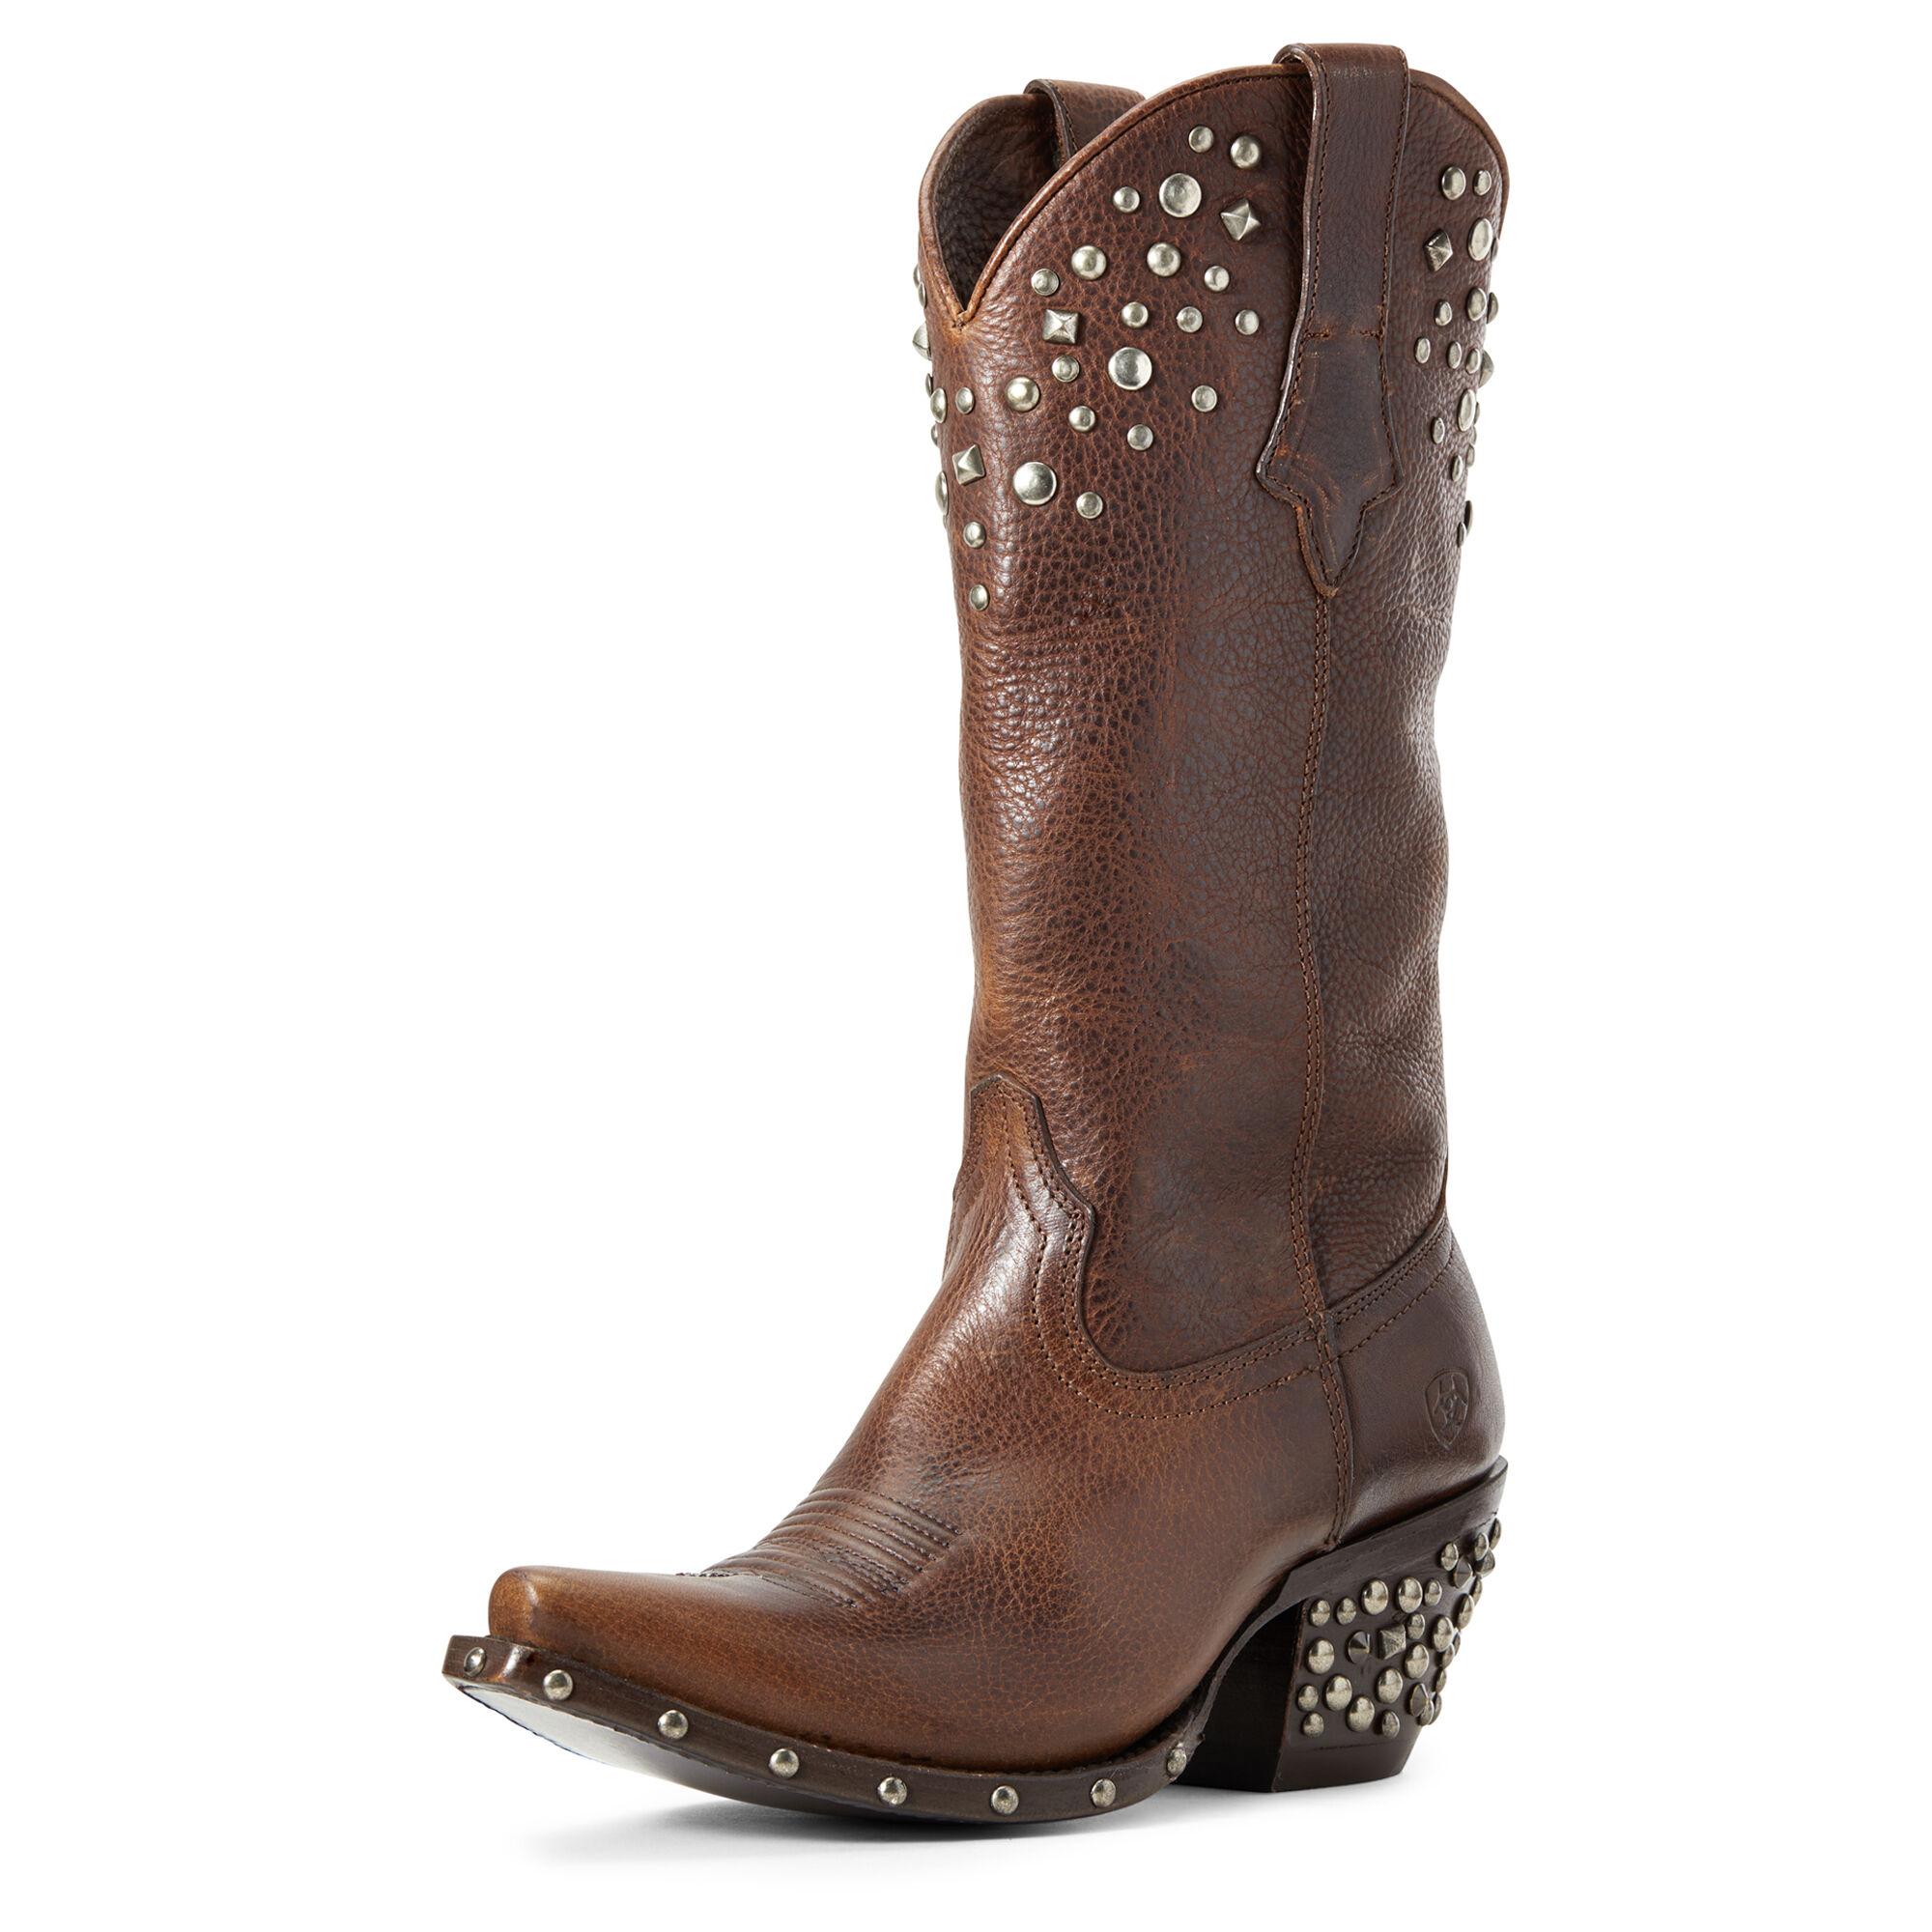 Women's Calypso Western Boots in Pebbled Walnut by Ariat